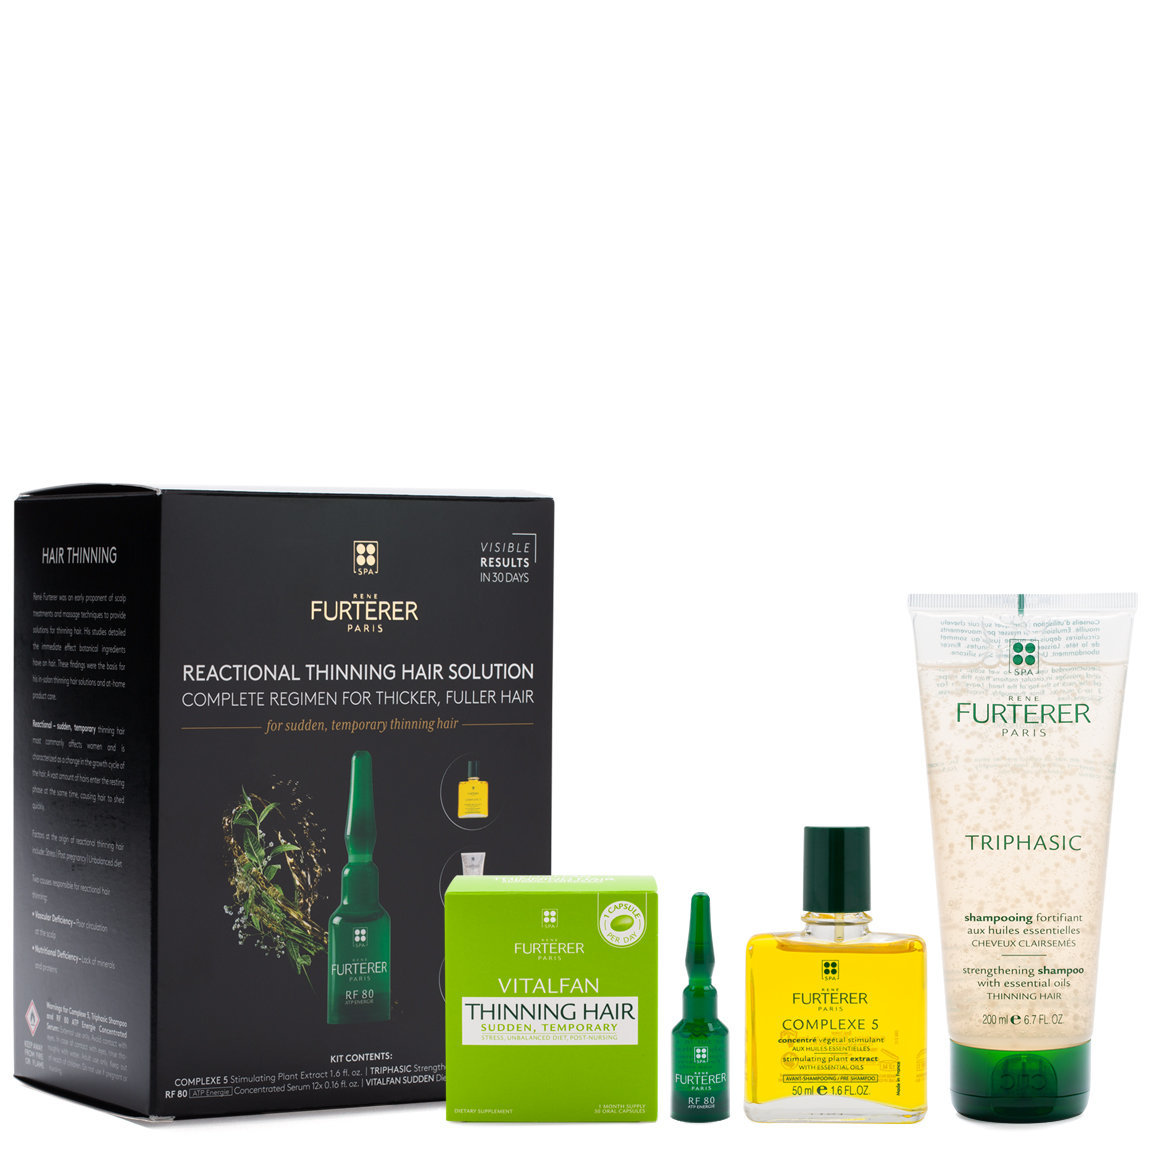 Rene Furterer Complete Thinning Hair Solution 4-Step Kit - For Sudden, Temporary Thinning Hair product smear.